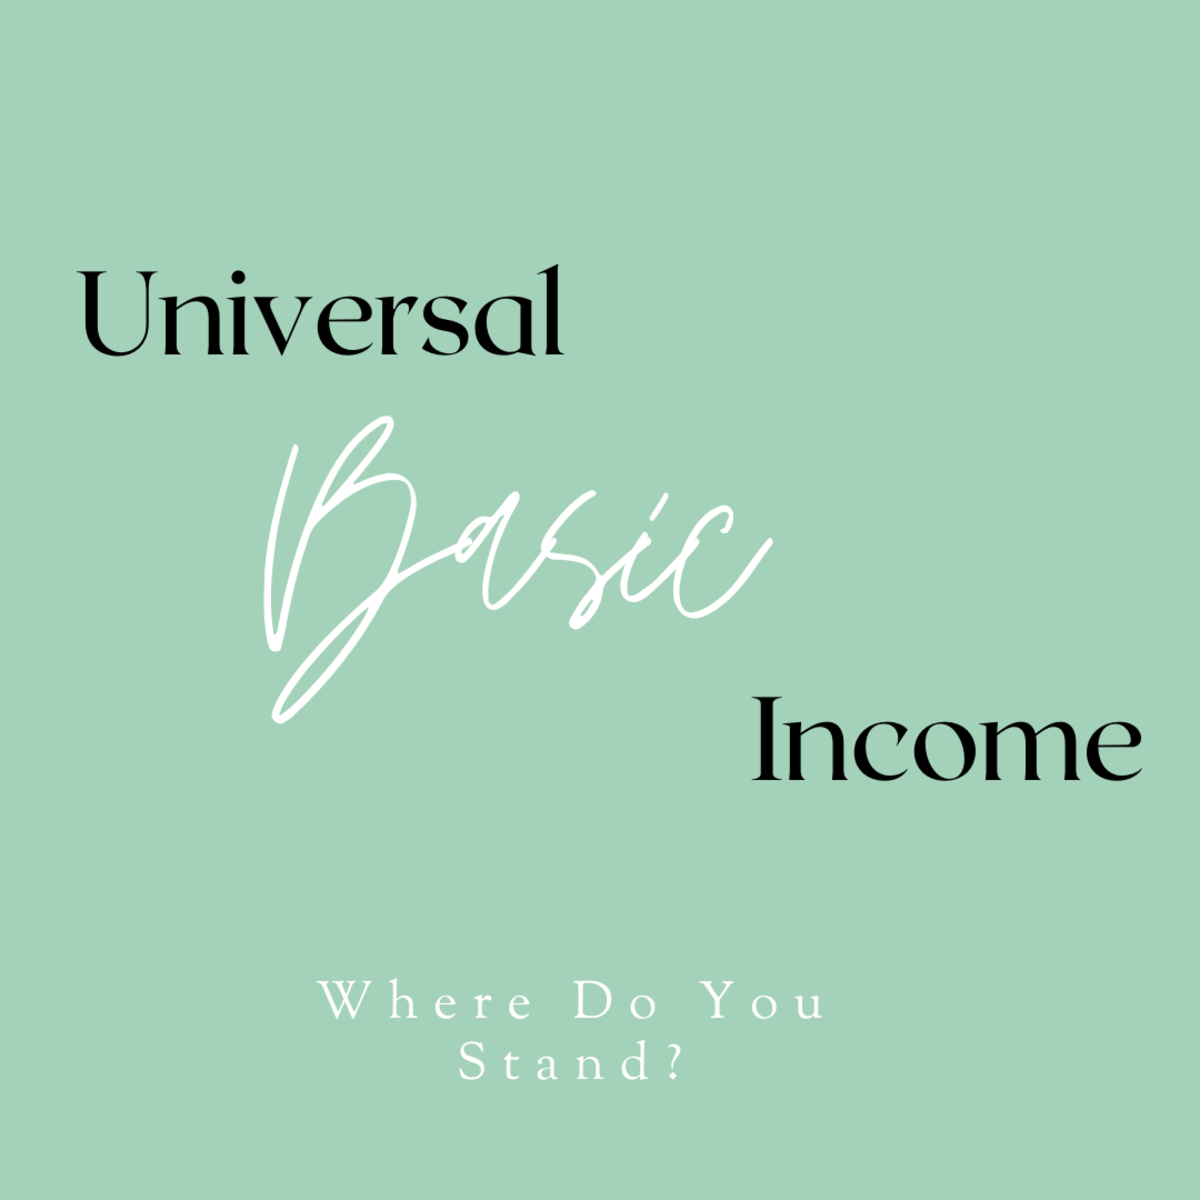 Universal Basic Income, or UBI, as an idea has been picking up a lot of steam lately. As with any revolutionary idea, there are supporters and there are detractors. Learn the facts about UBI!